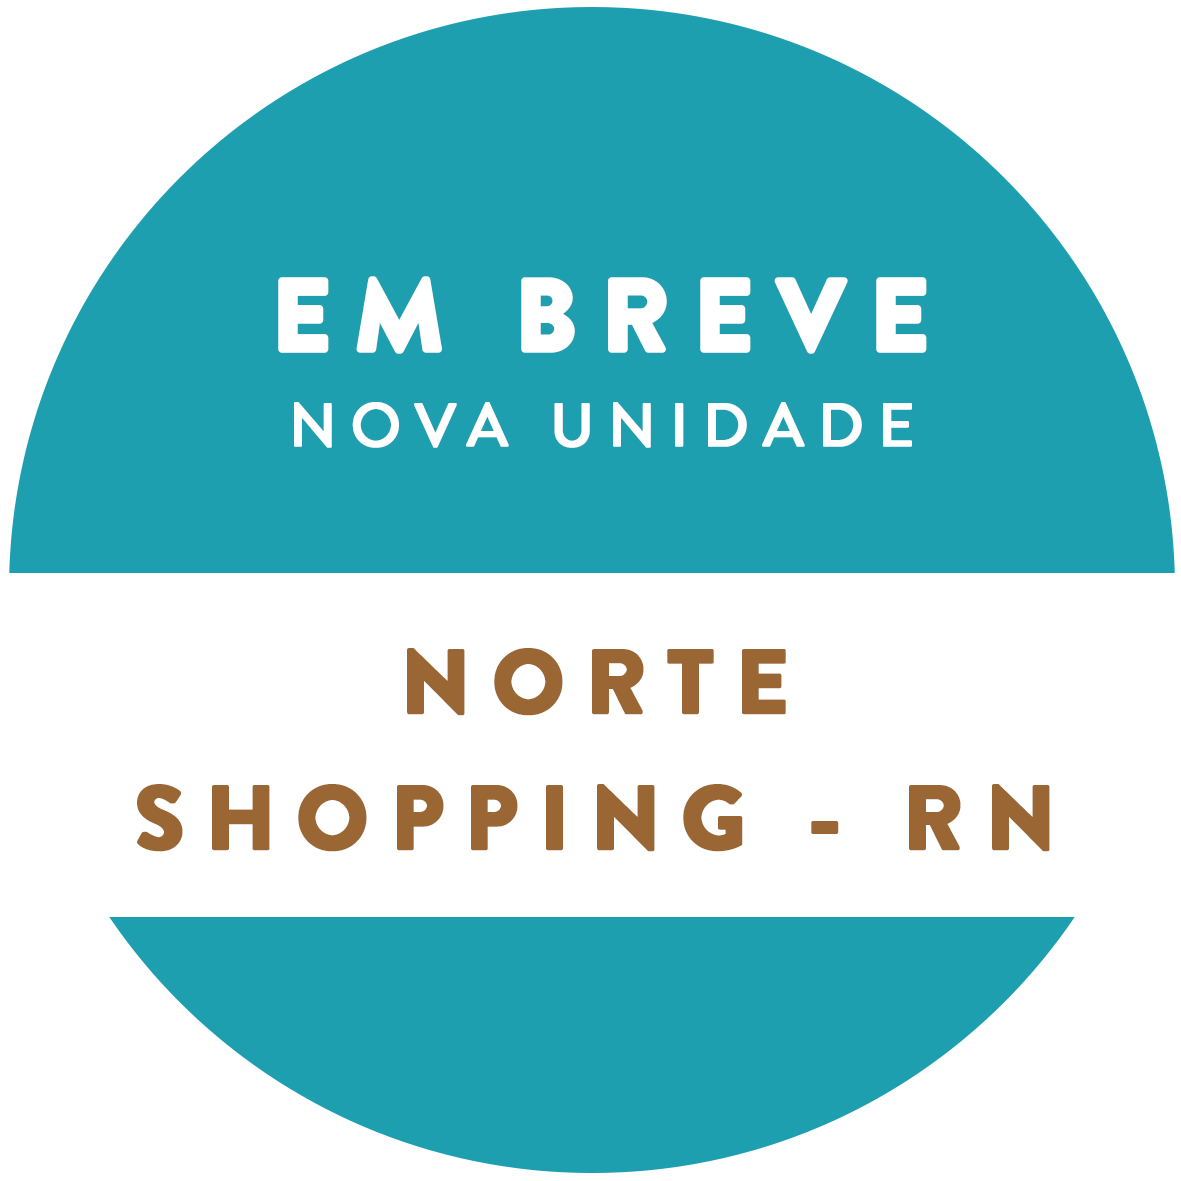 NOVA norte shopping